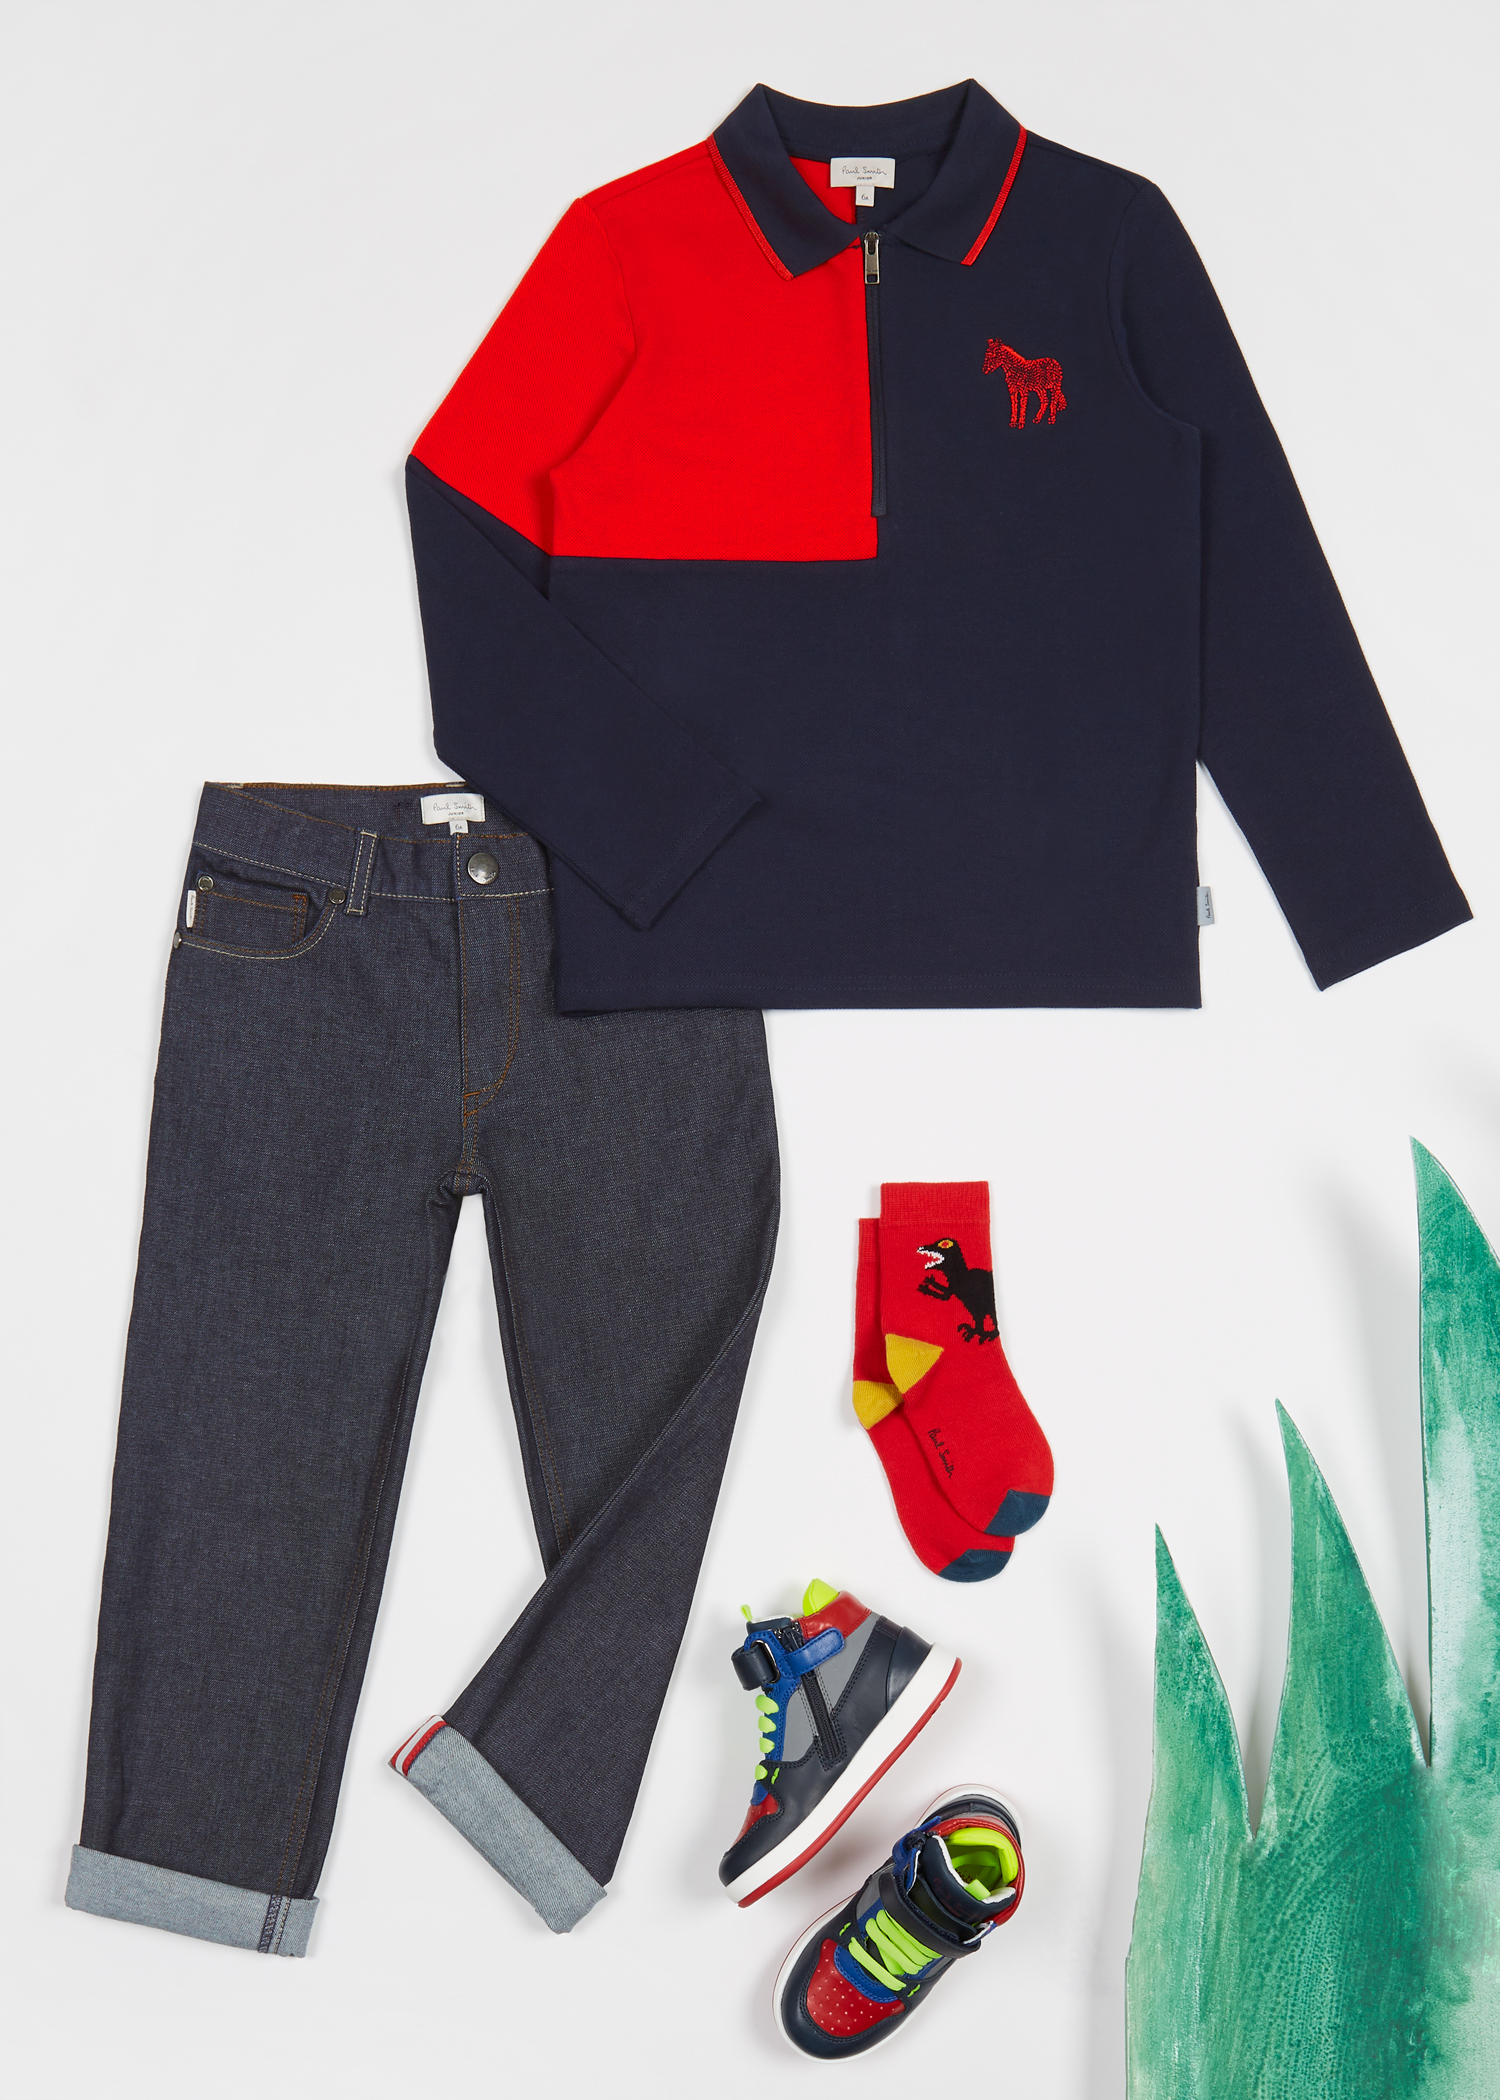 Boys 2 16 Years Navy And Red Long Sleeve Polo Shirt Paul Smith Us